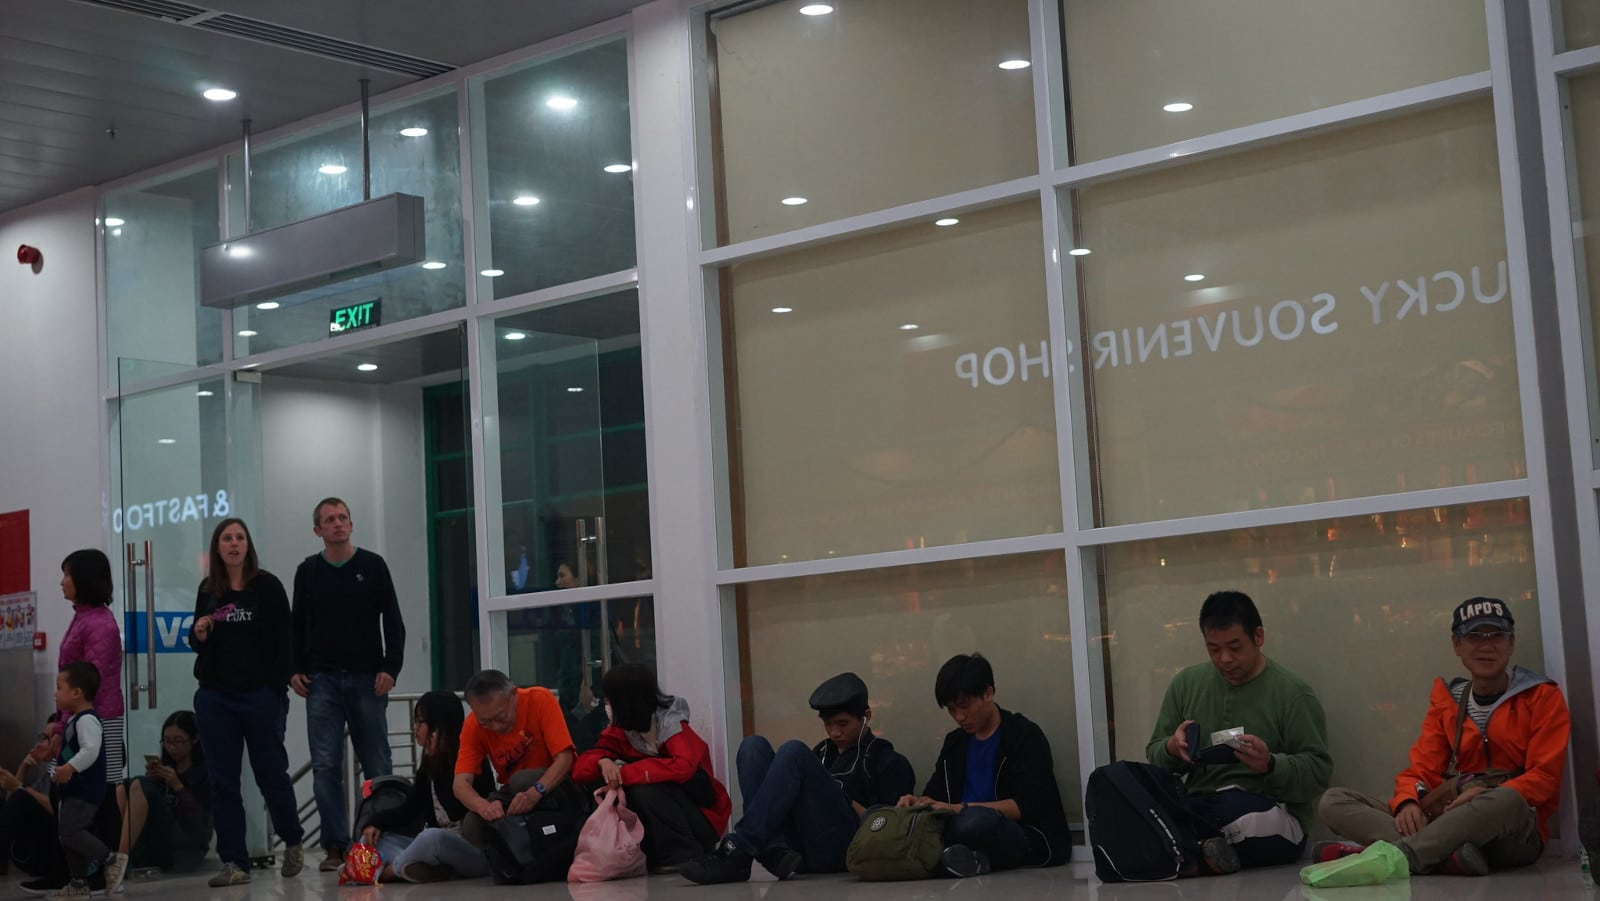 Image of people waiting for their flight at Phu Bai International Airport in Vietnam